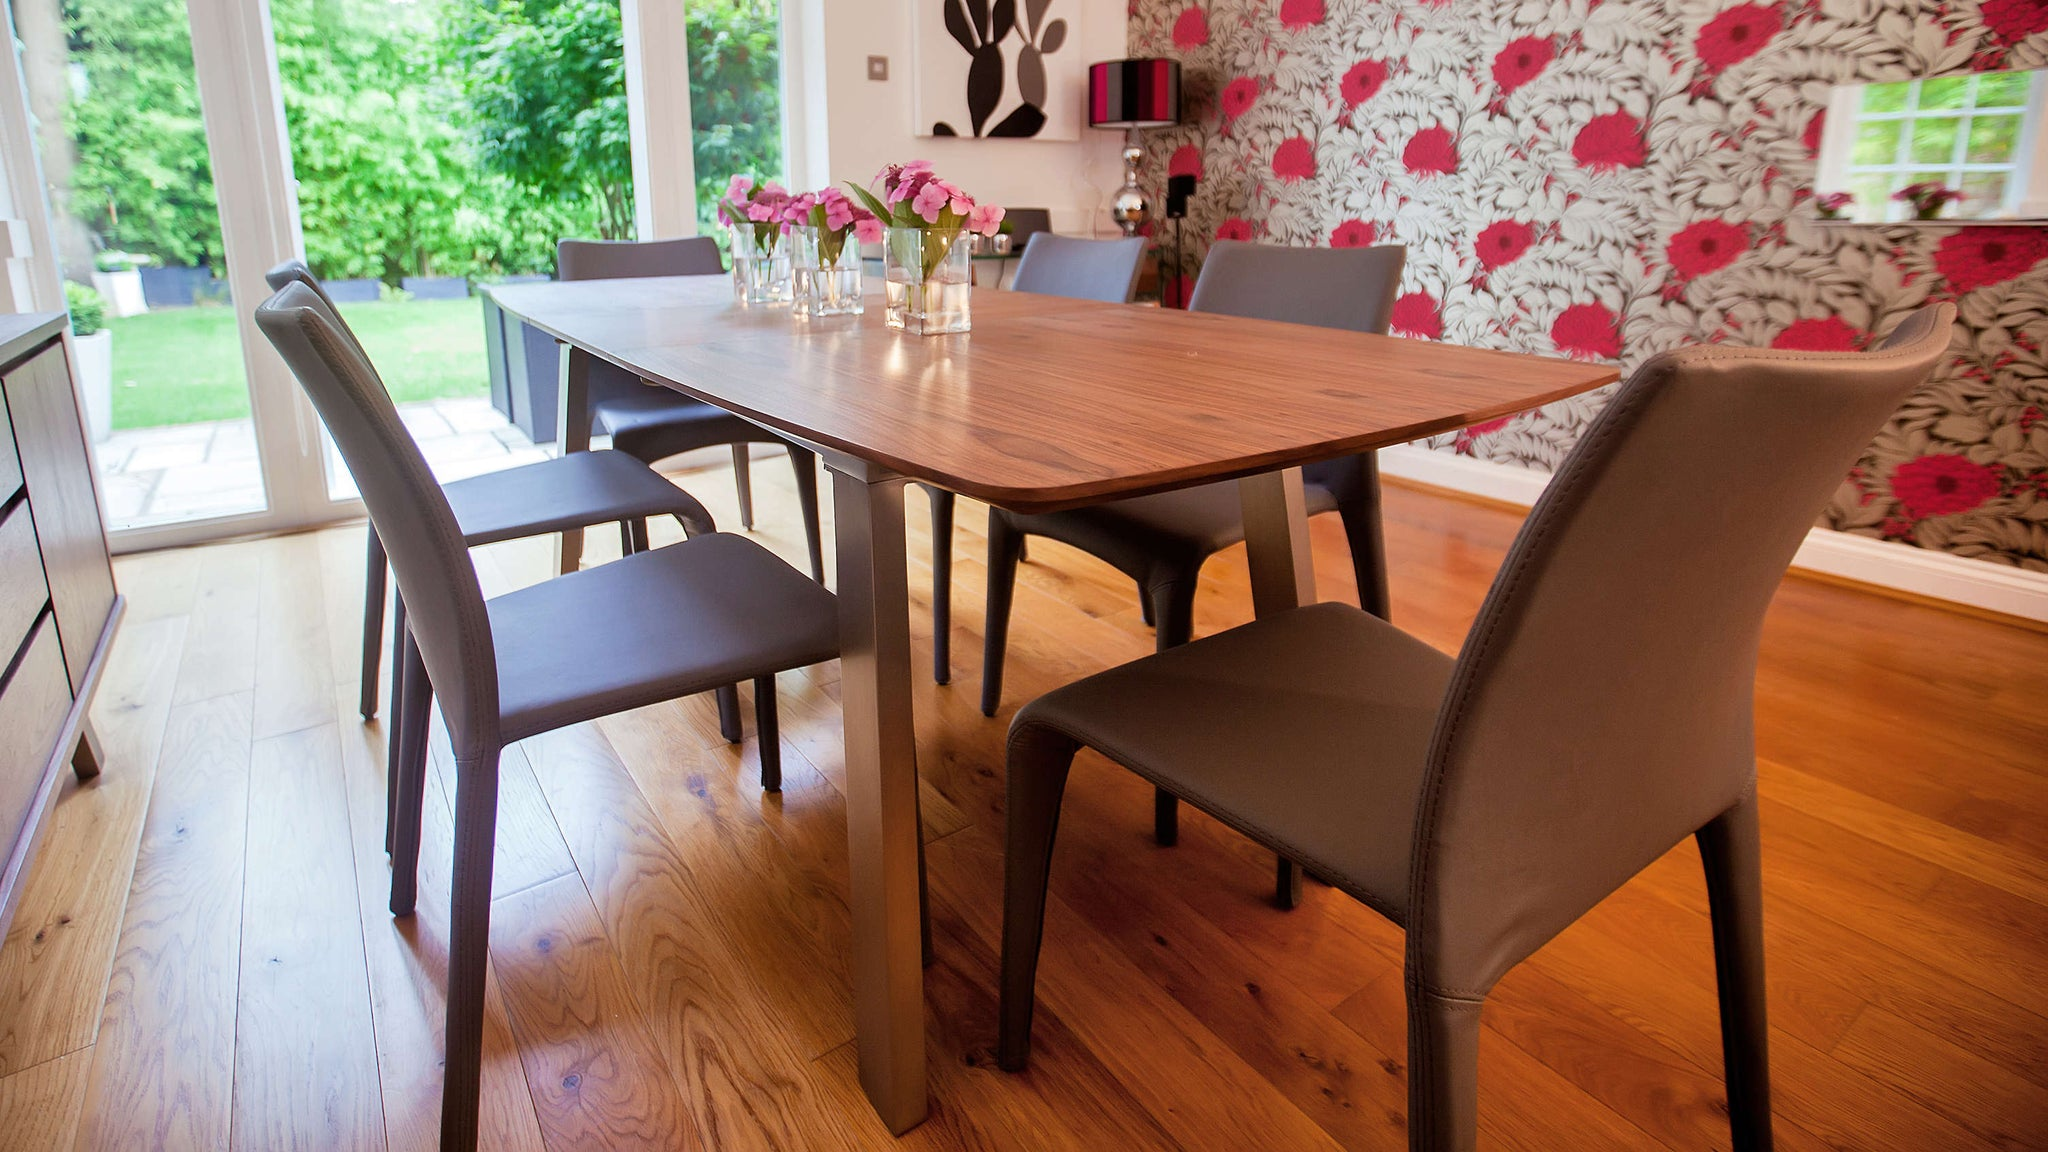 Stylish Stackable Dining Chairs and Extending Dining Table